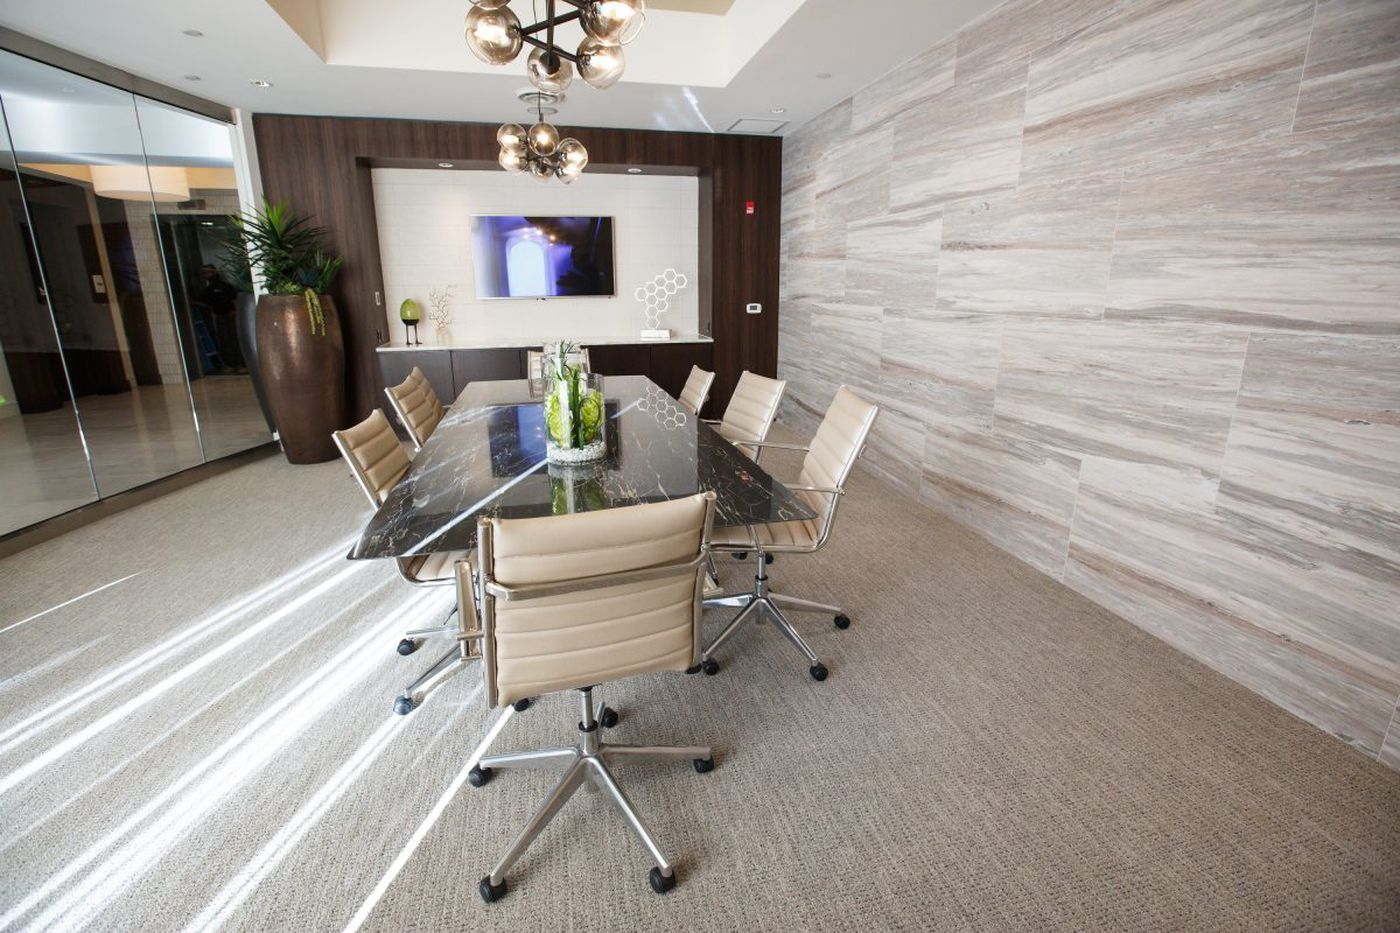 America's new workplace: An apartment building's common room